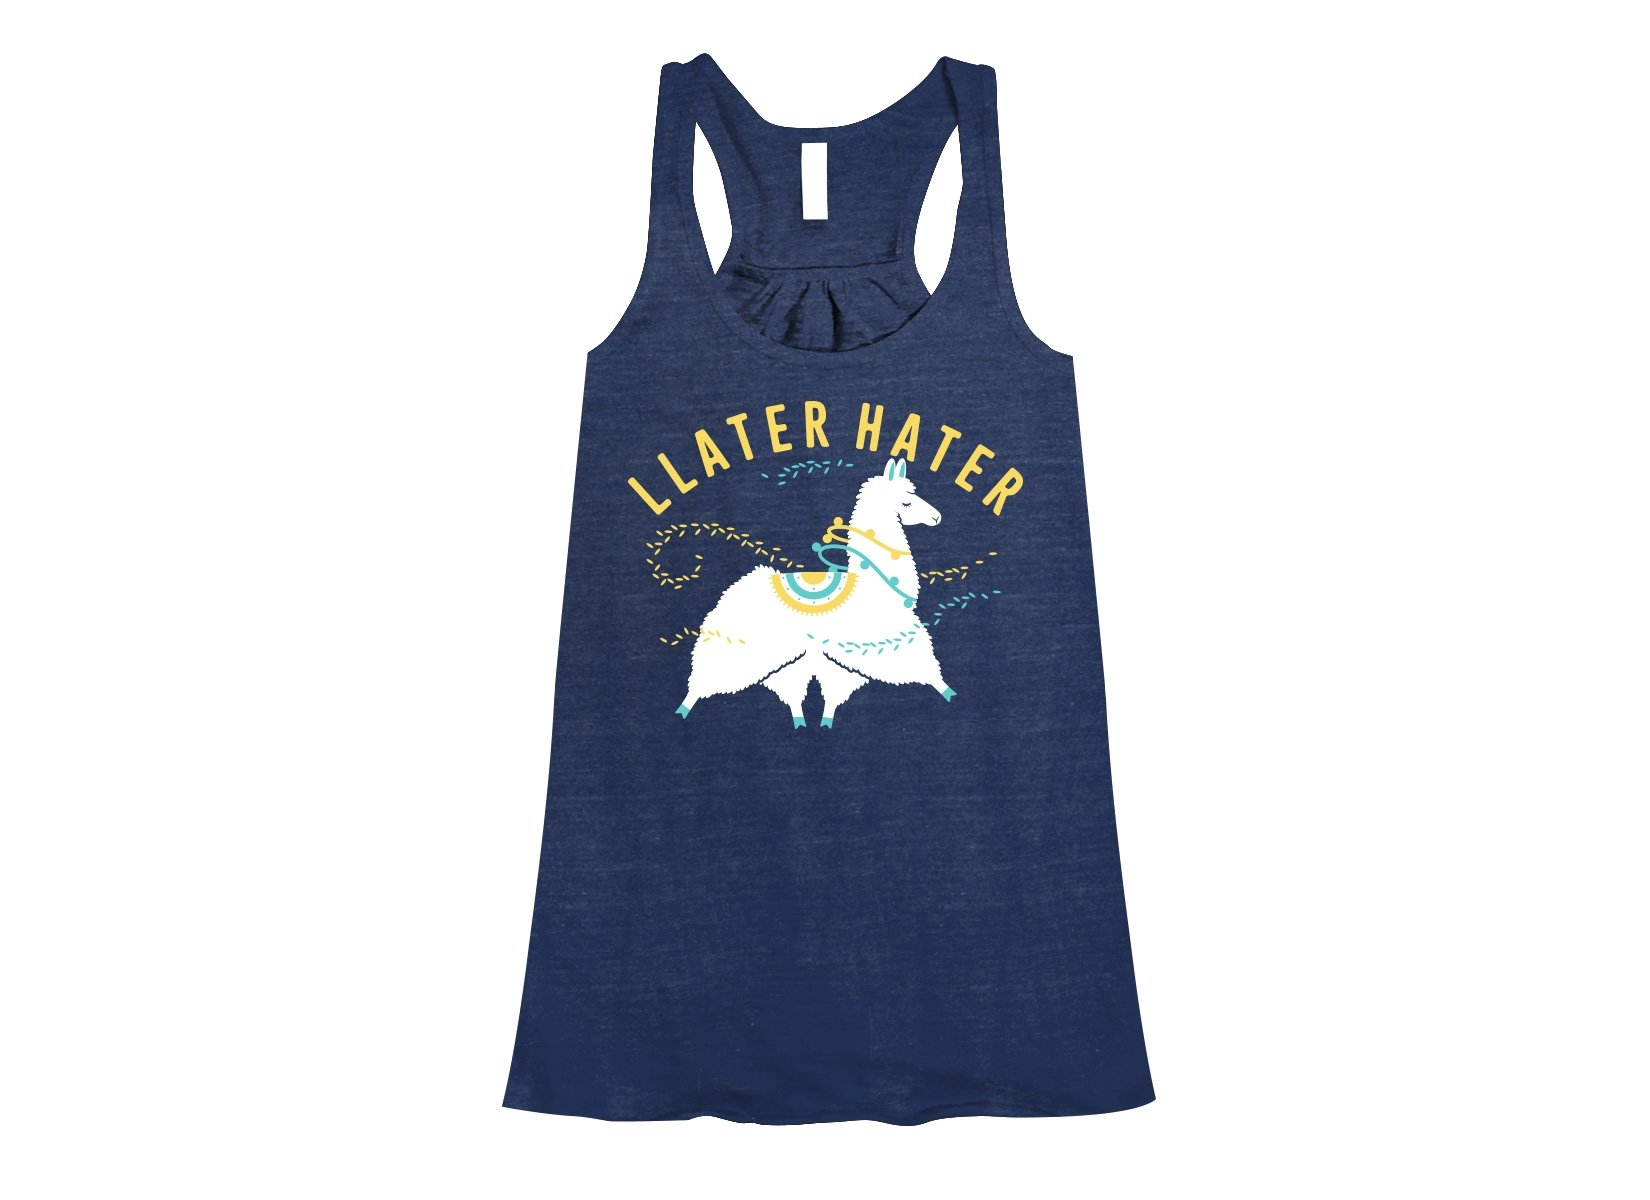 Llater Hater on Womens Tanks T-Shirt